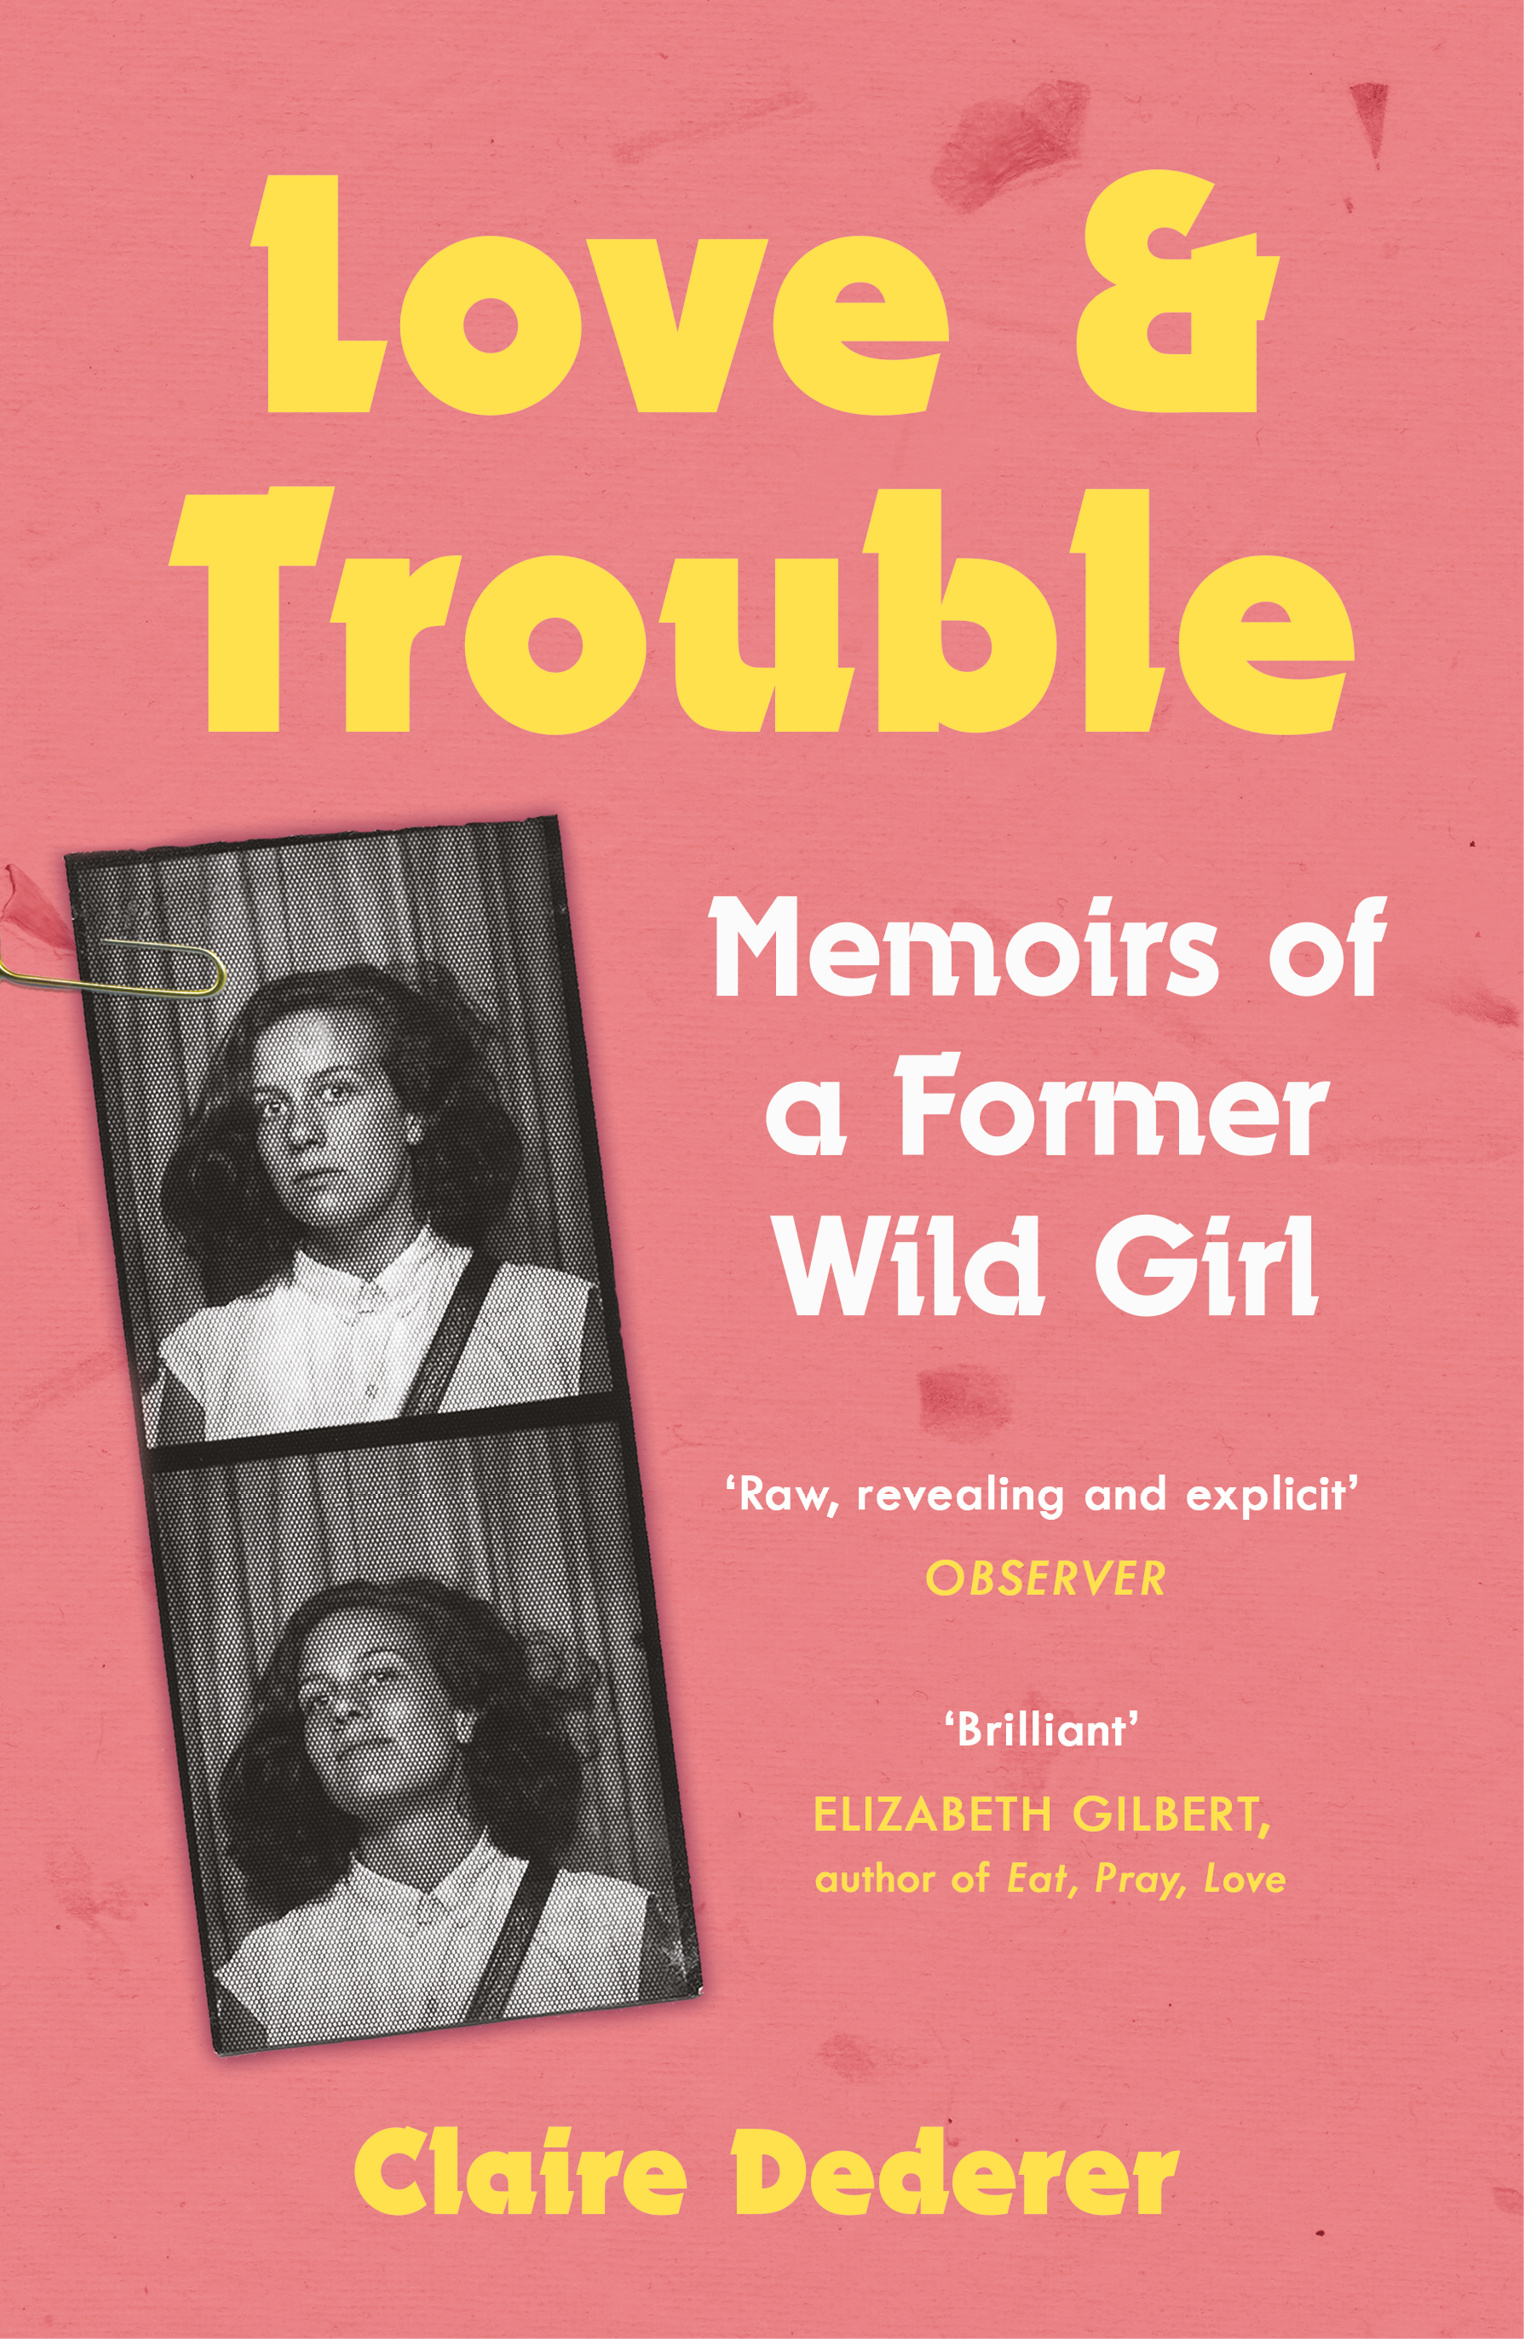 Love and Trouble: Memoirs of a Former Wild Girl by Claire Dederer, ISBN: 9781472231208